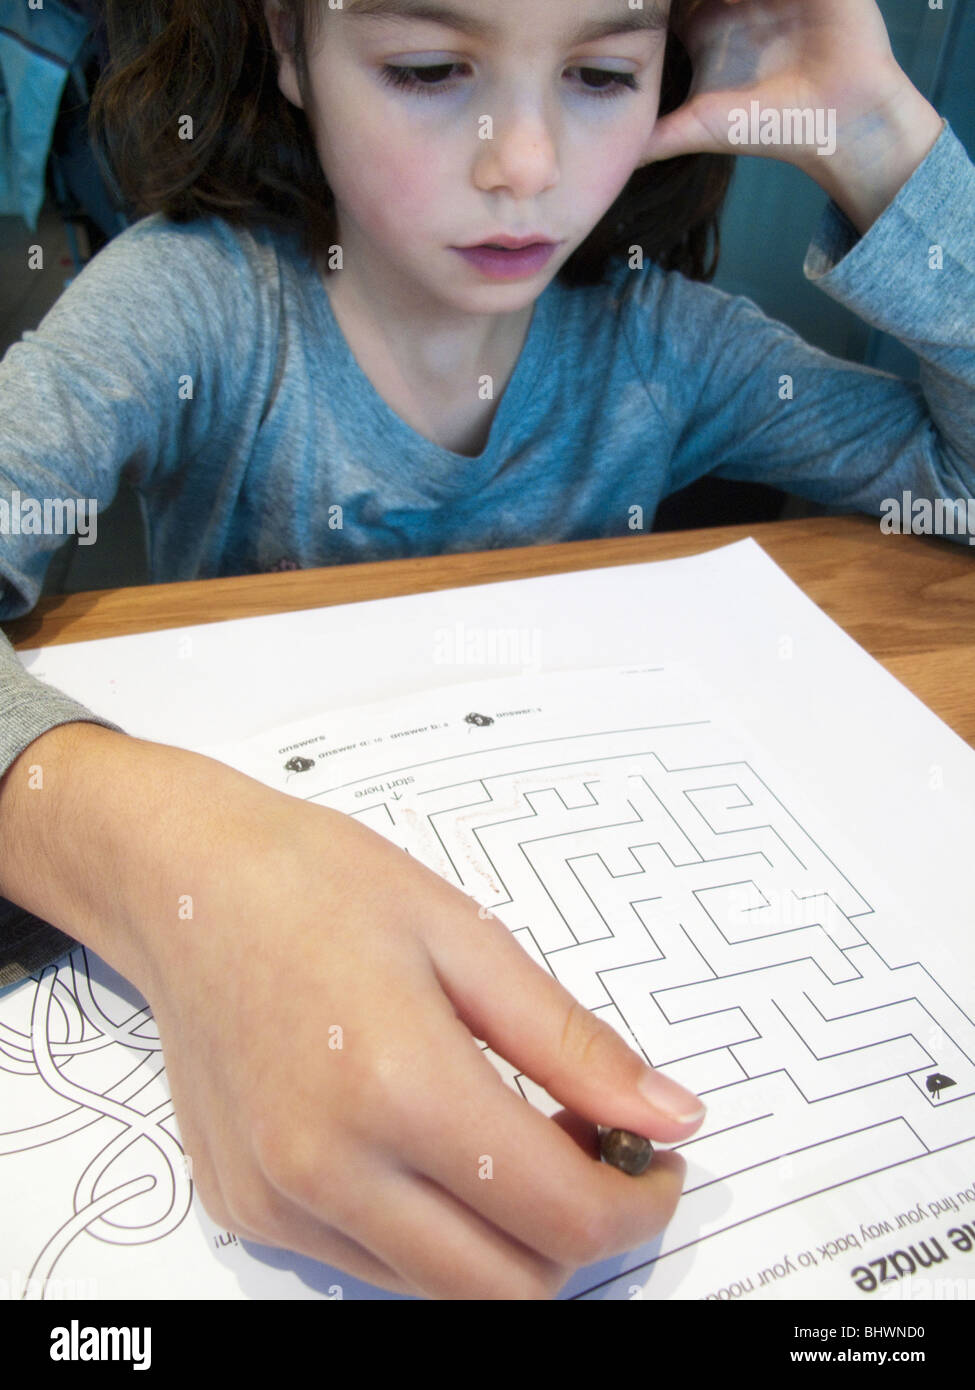 child solving a puzzle - Stock Image